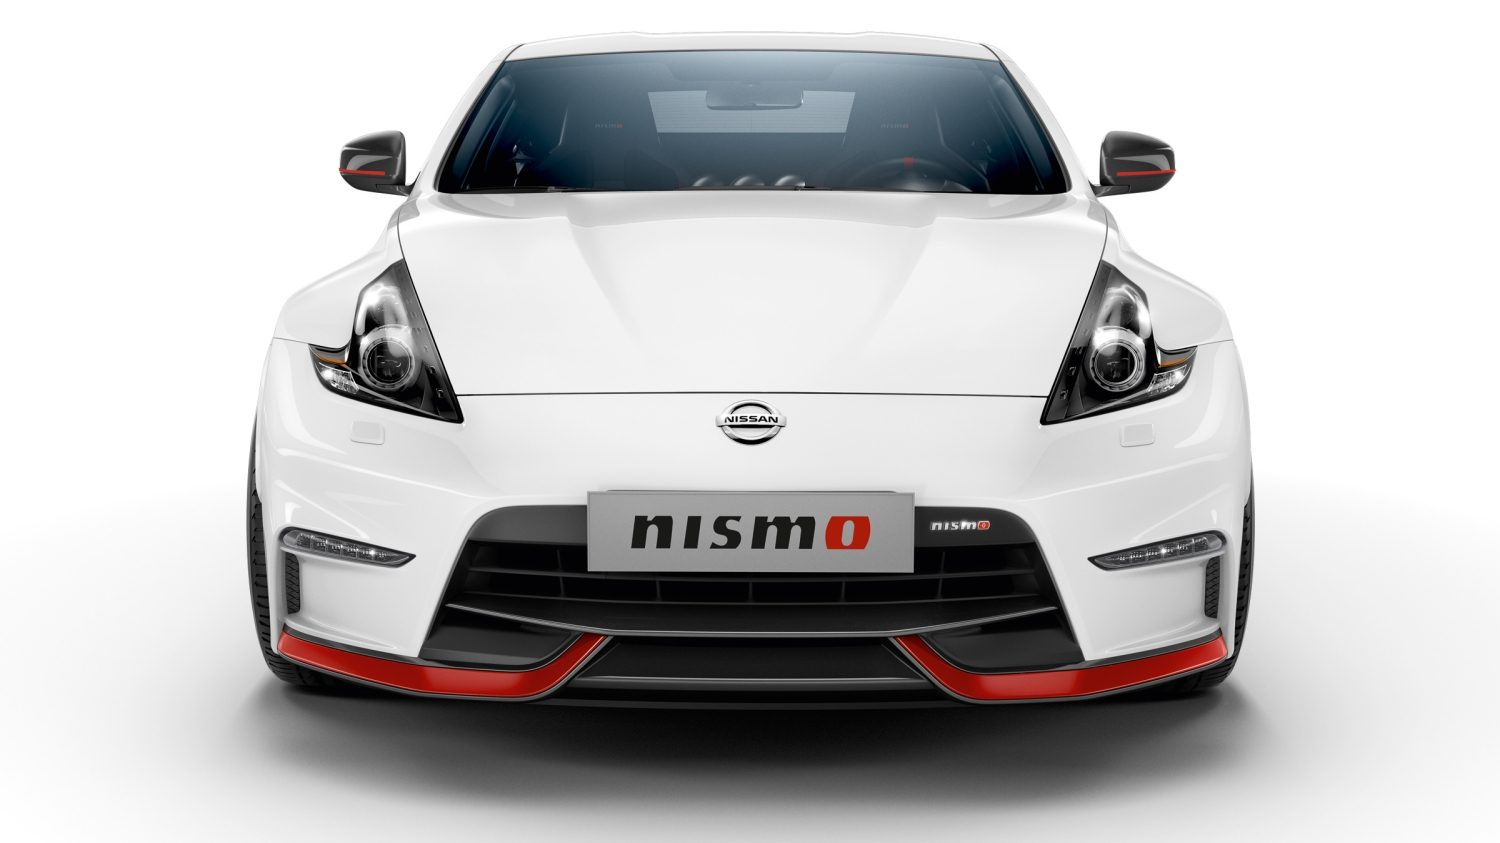 Nissan 370Z Coupé - Pearl White - Vista frontal